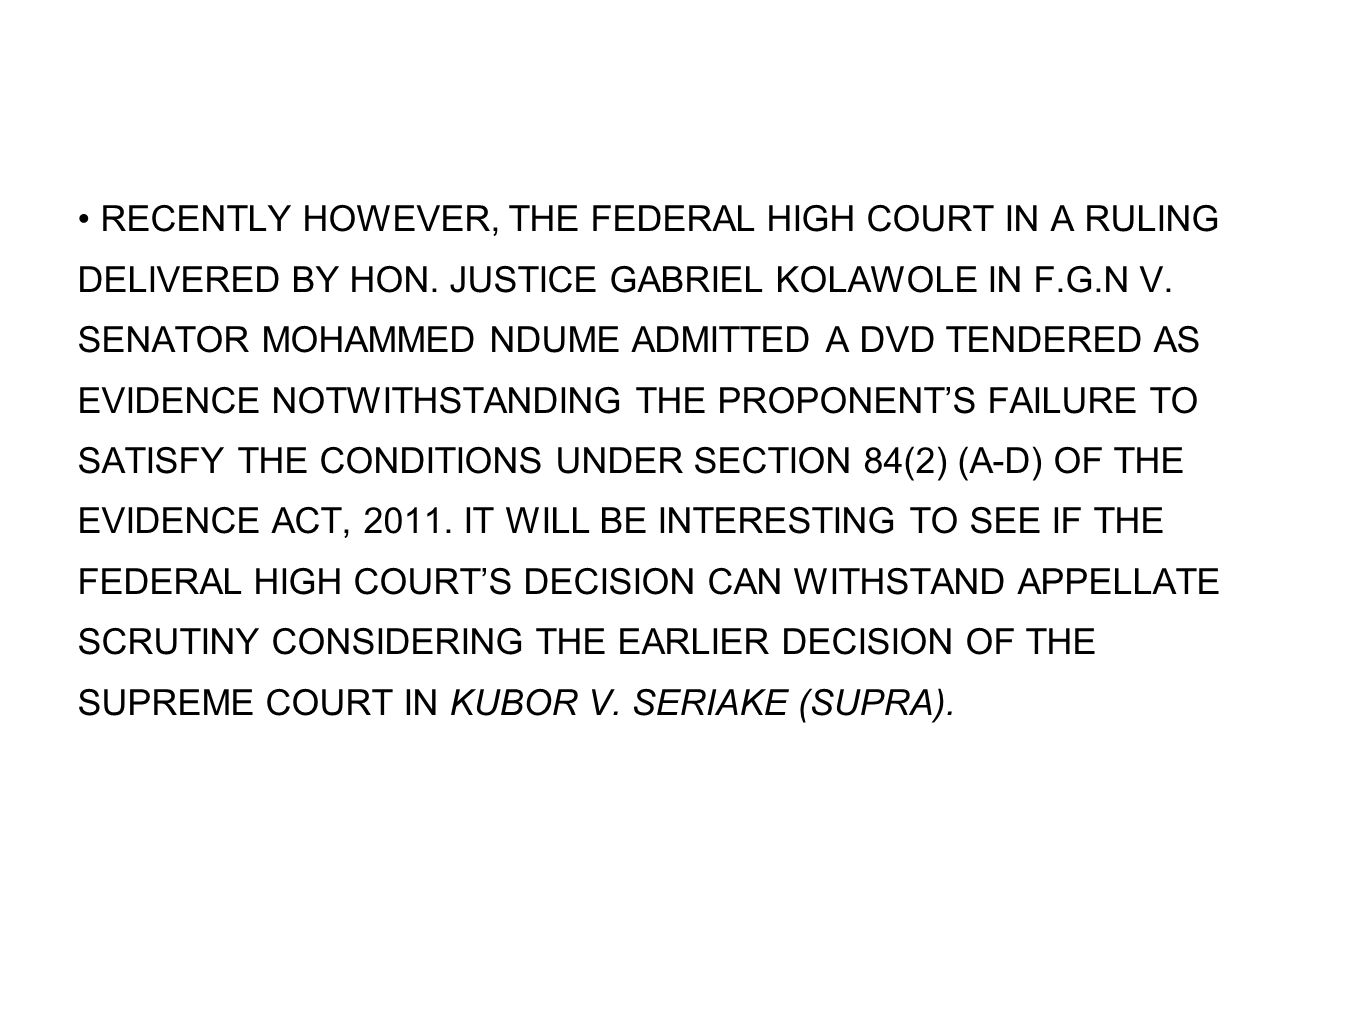 RECENTLY HOWEVER, THE FEDERAL HIGH COURT IN A RULING DELIVERED BY HON